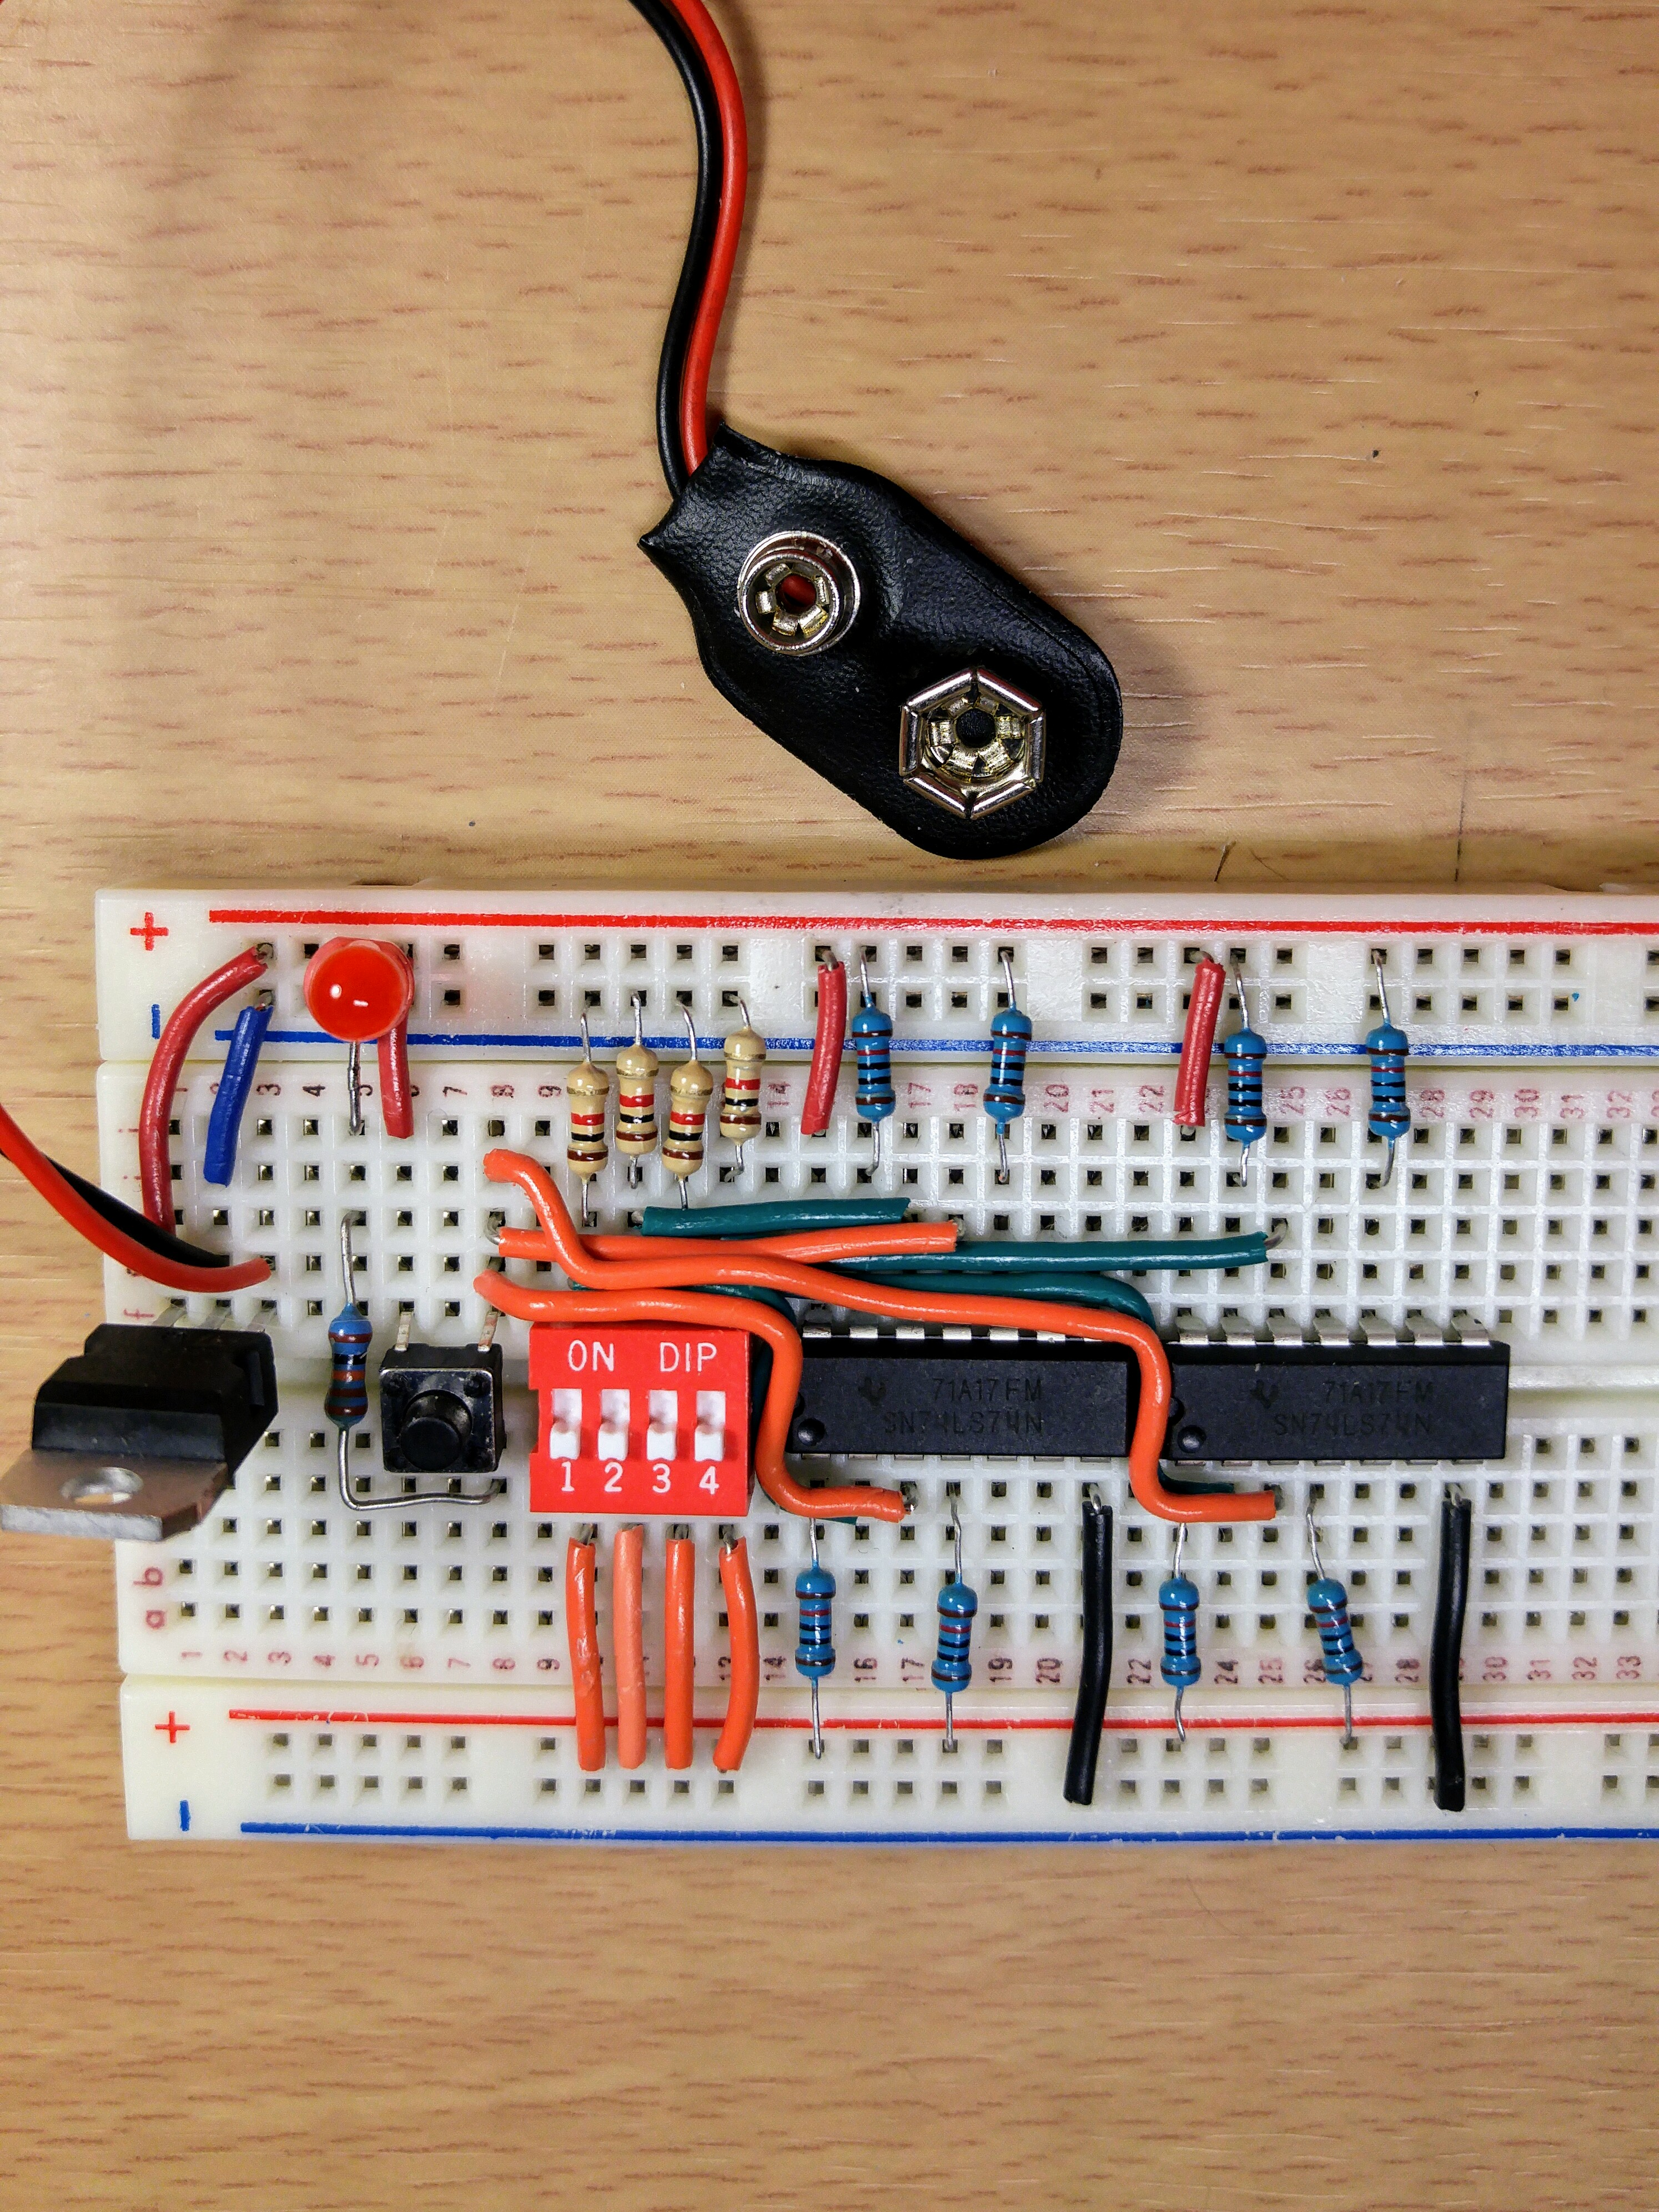 Picture of Hook Up the D Flip-Flops to the DIP Switch and Tack Switch